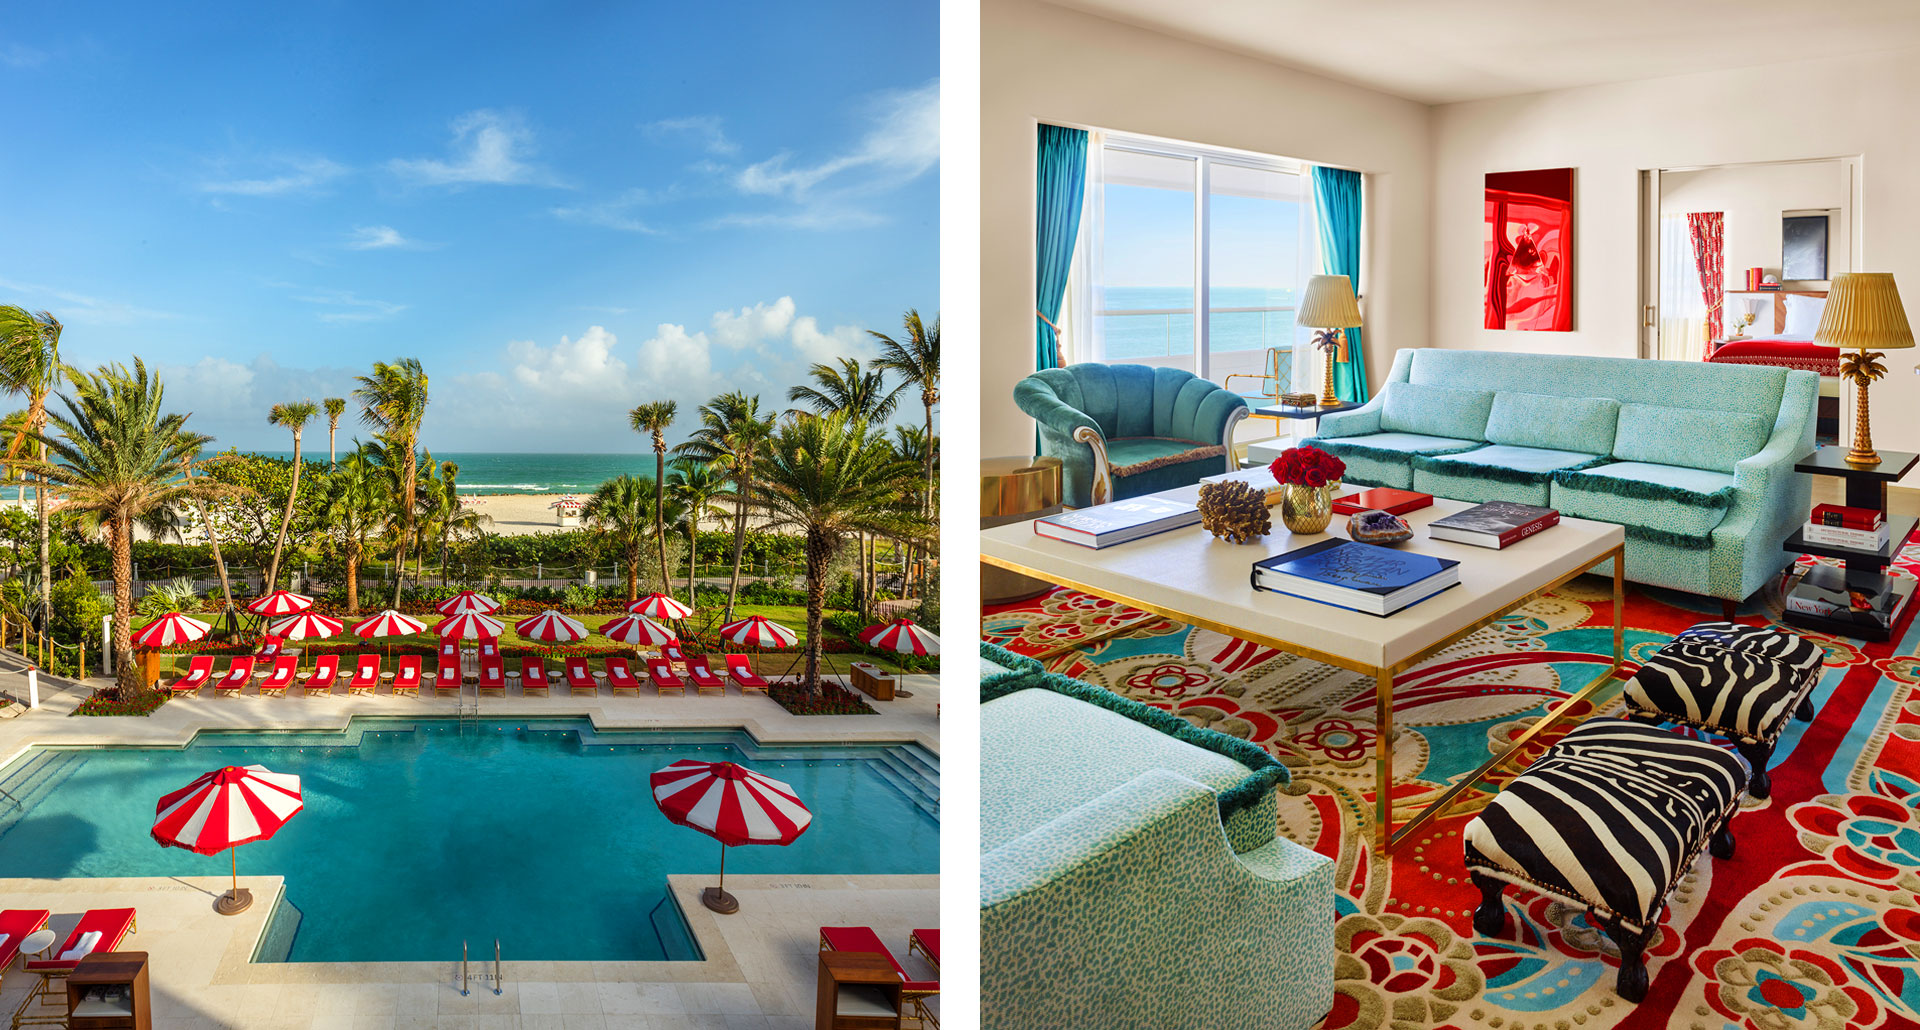 Faena Hotel - boutique hotel in Miami Beach